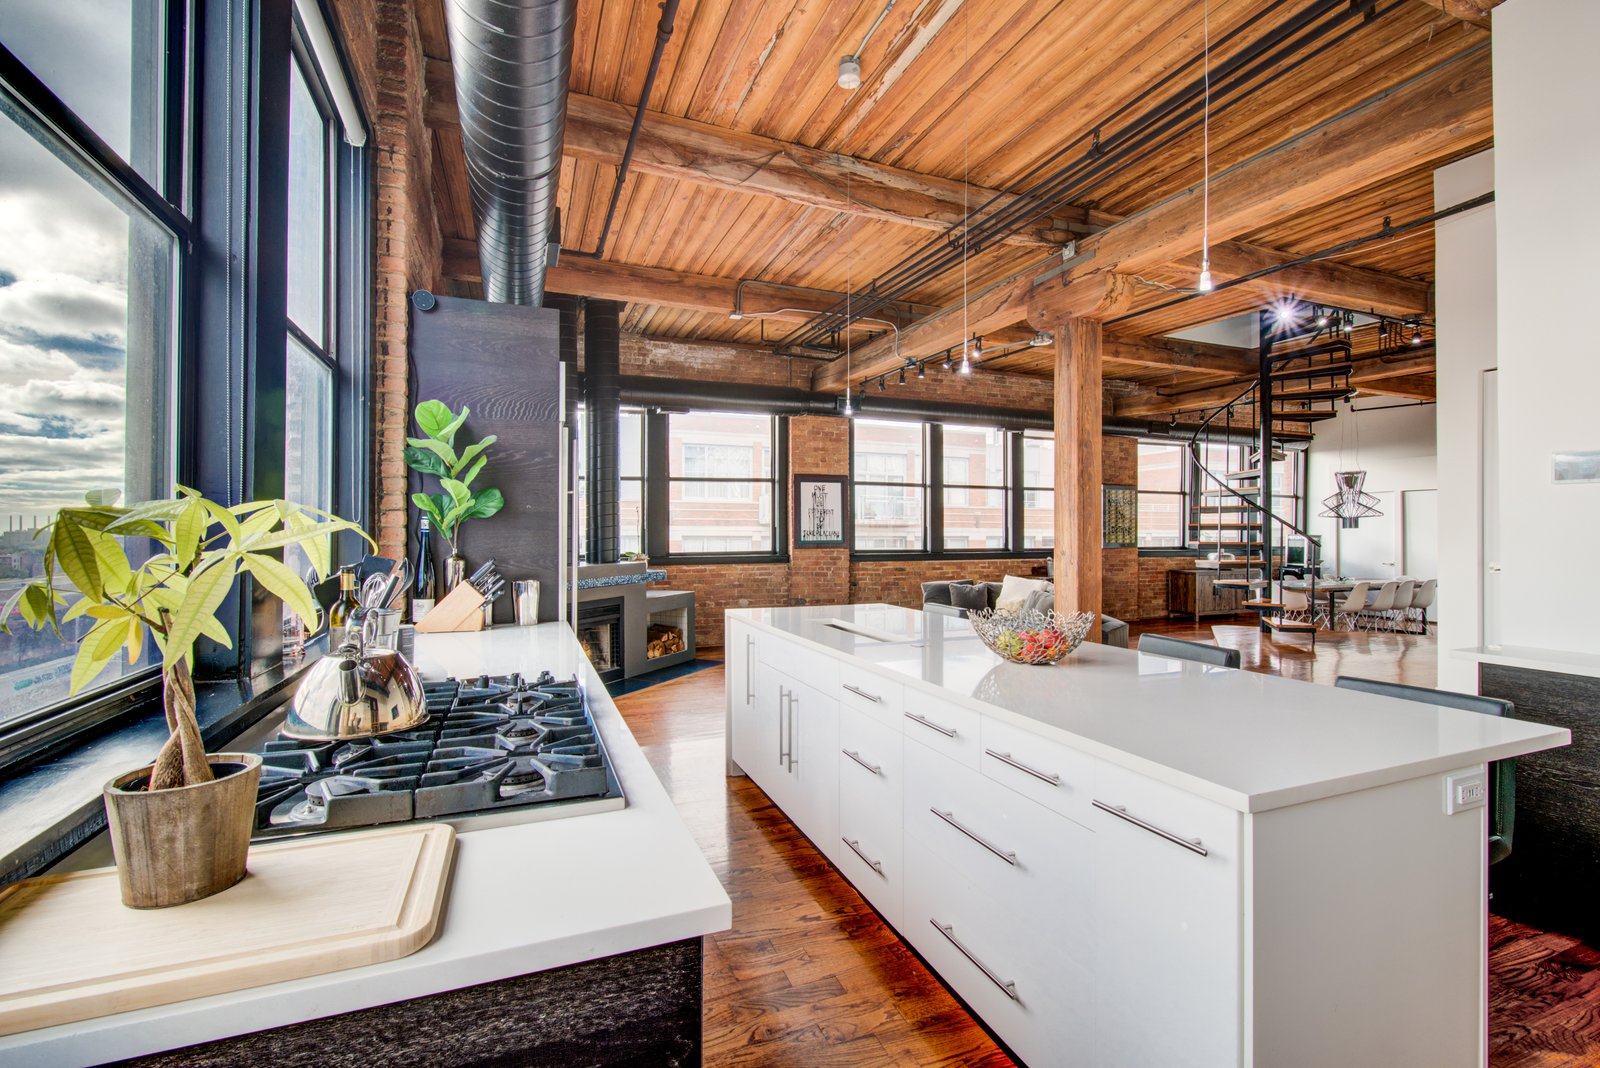 Kitchen, White Cabinet, Cooktops, Medium Hardwood Floor, Track Lighting, Ceiling Lighting, and Quartzite Counter  Penthouse That Starred on NBC's 'Chicago Fire' Asks $1.775M